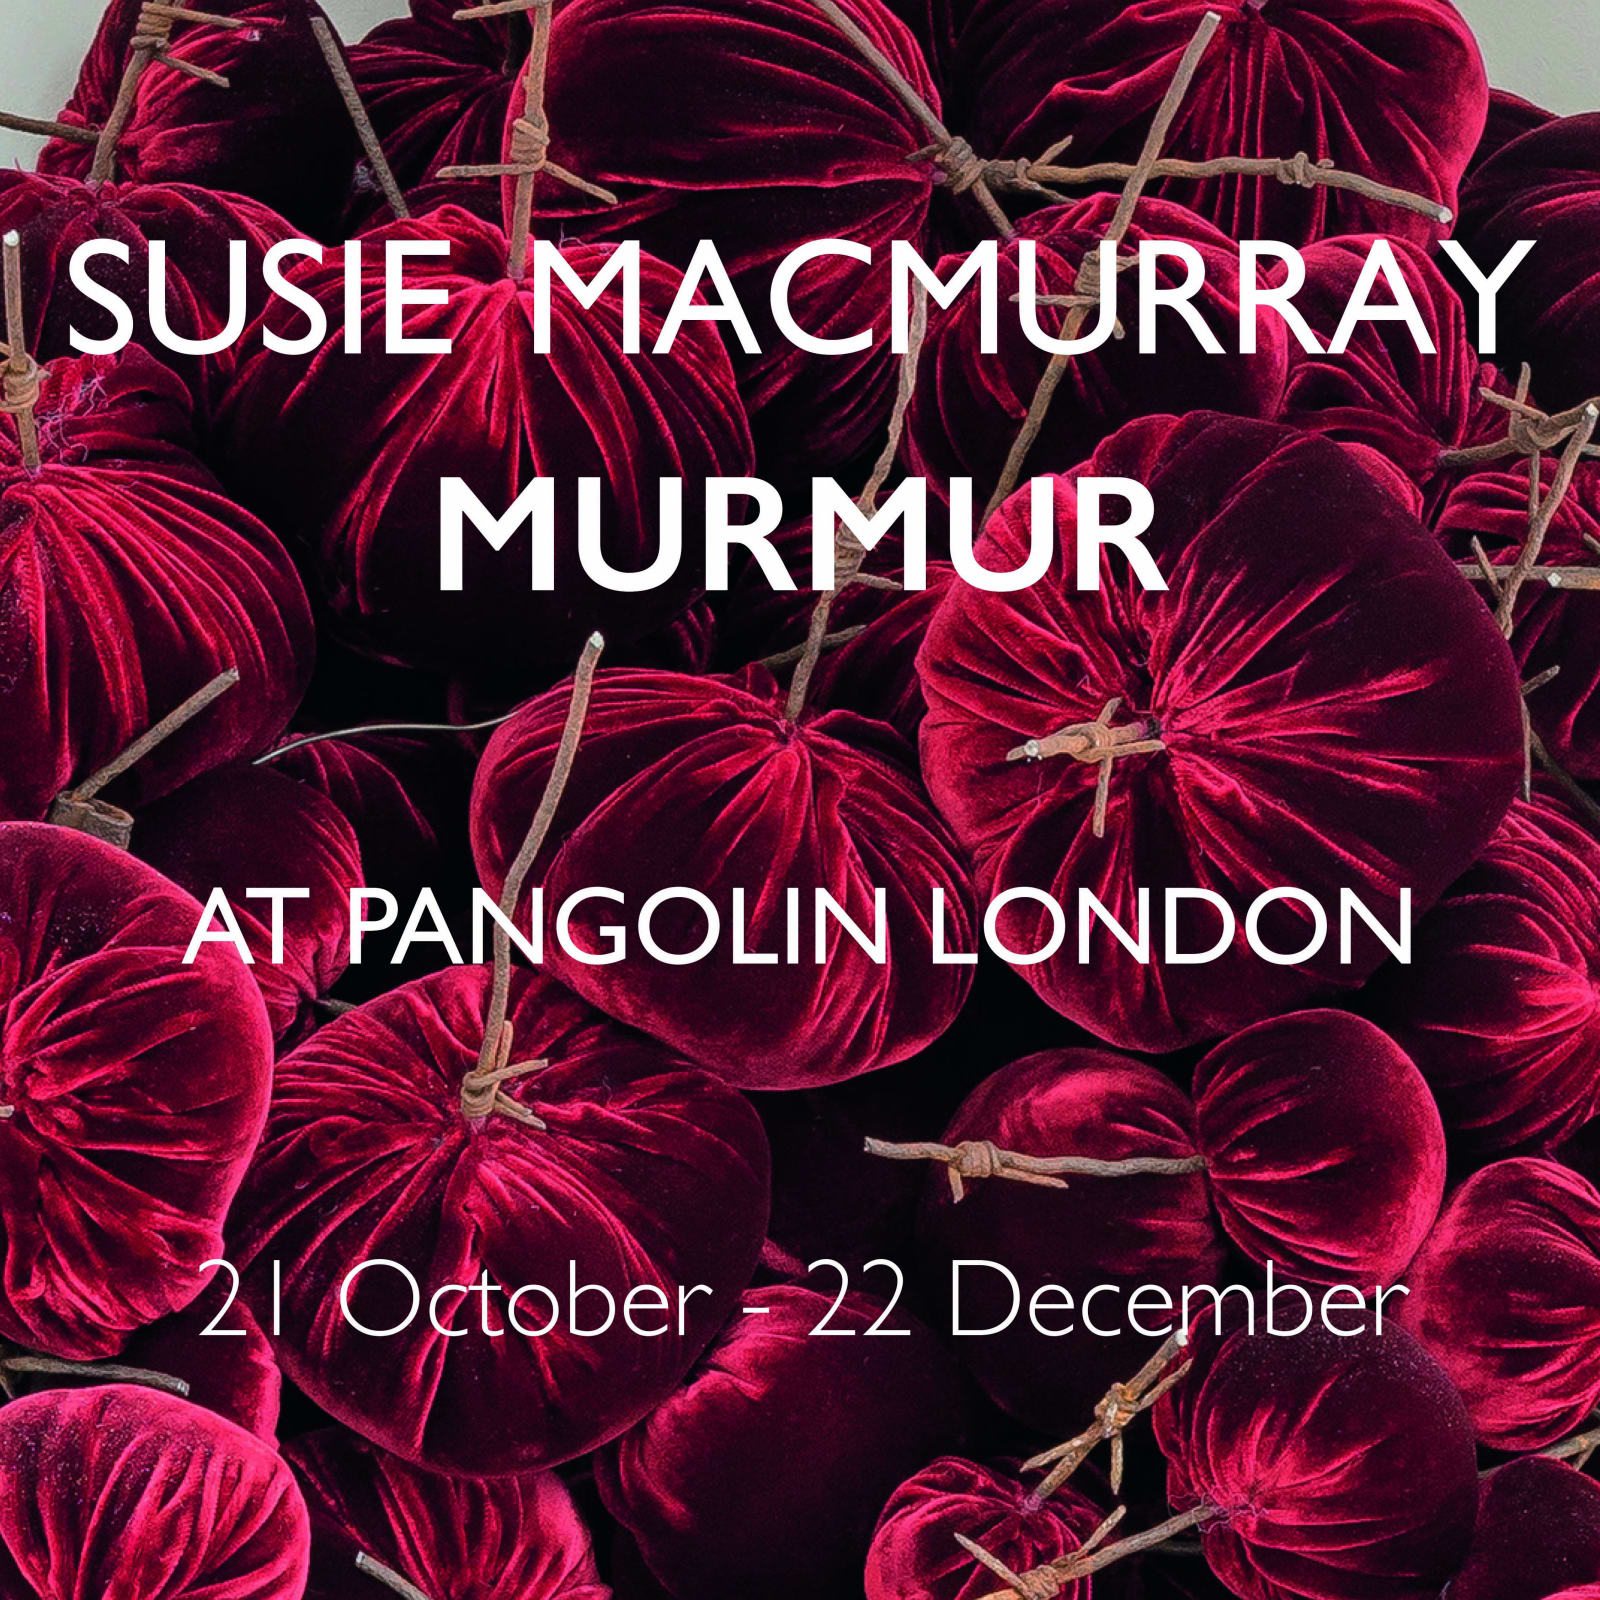 Watch a short film about our current exhibition 'Murmur' by Susie MacMurray. Available on the exhibition page.